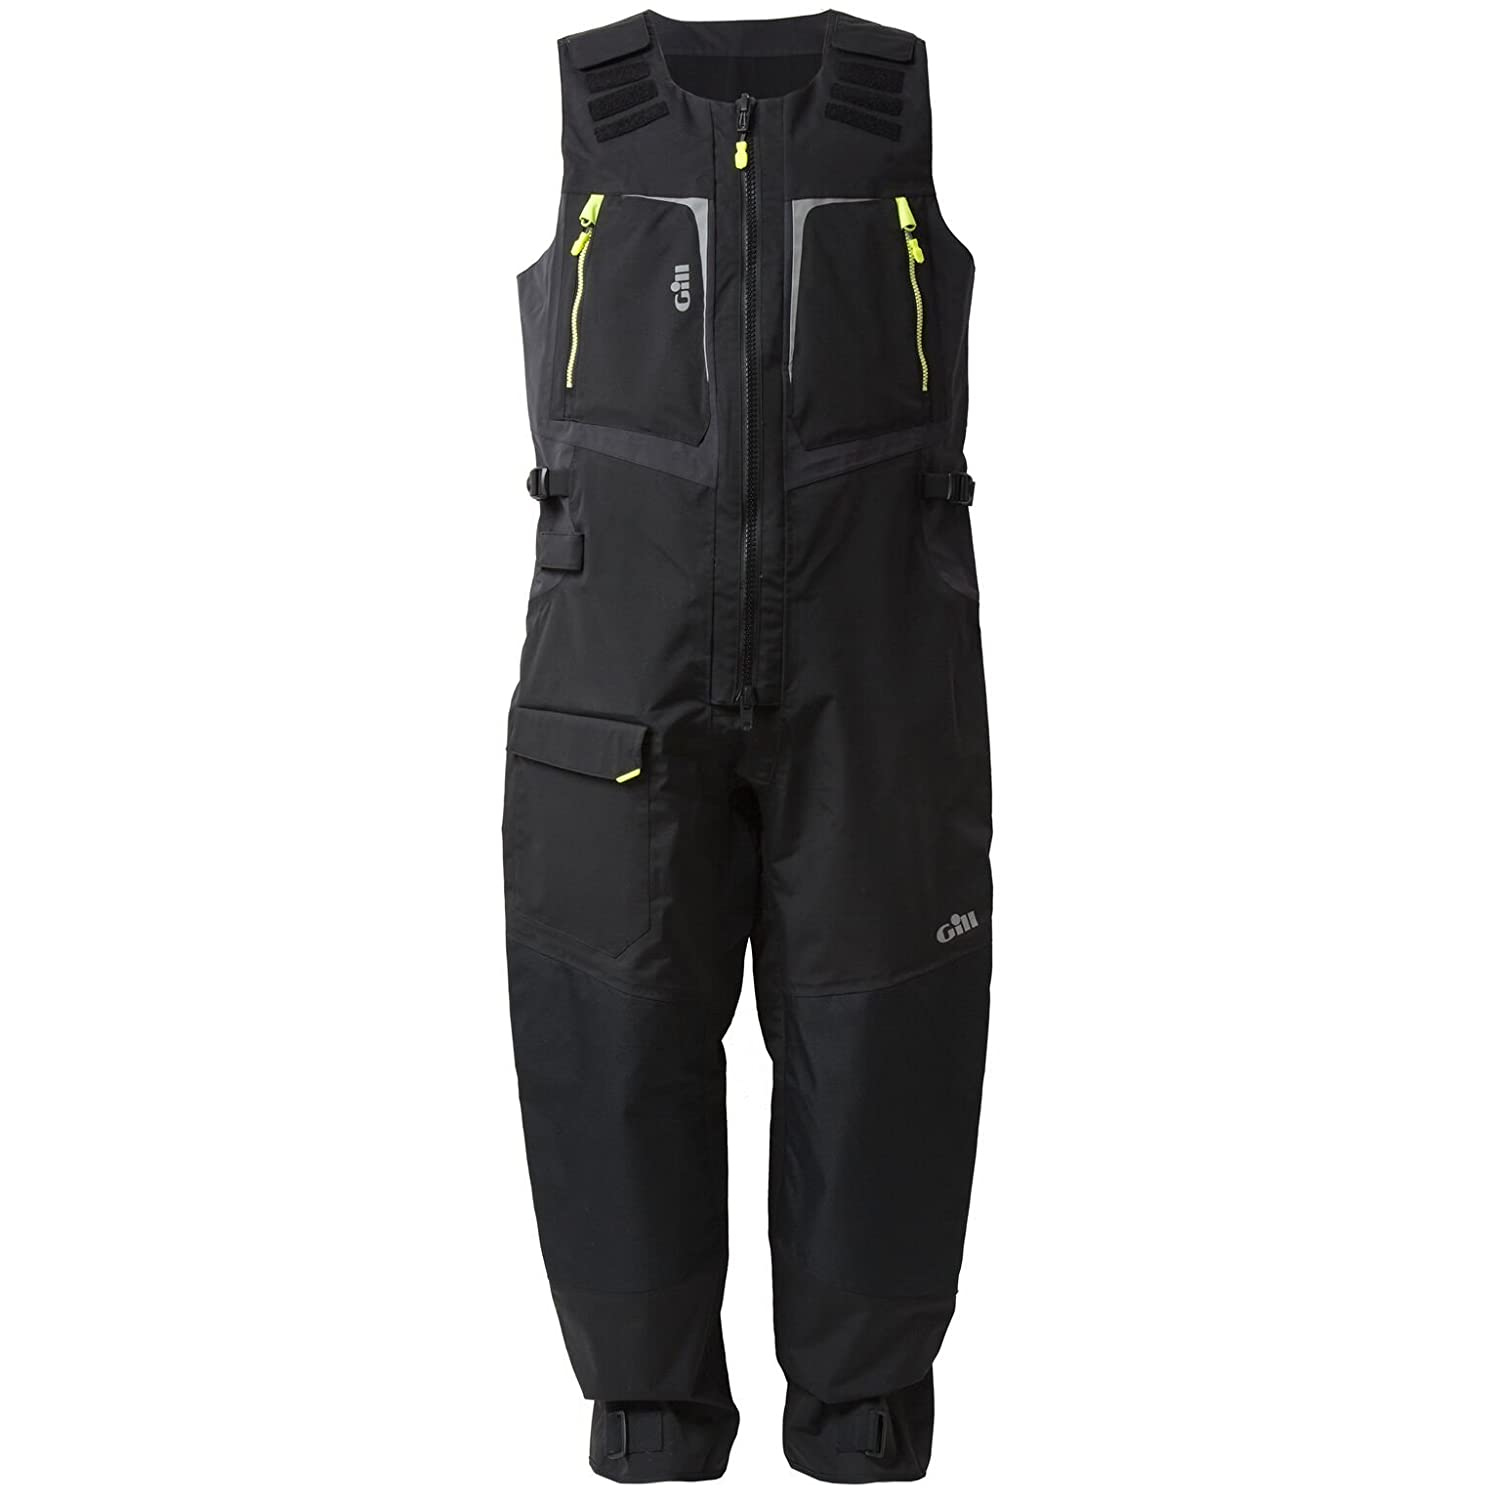 2017 Gillメンズos1 Offshore Ocean Trousers in Graphite os12t  Small